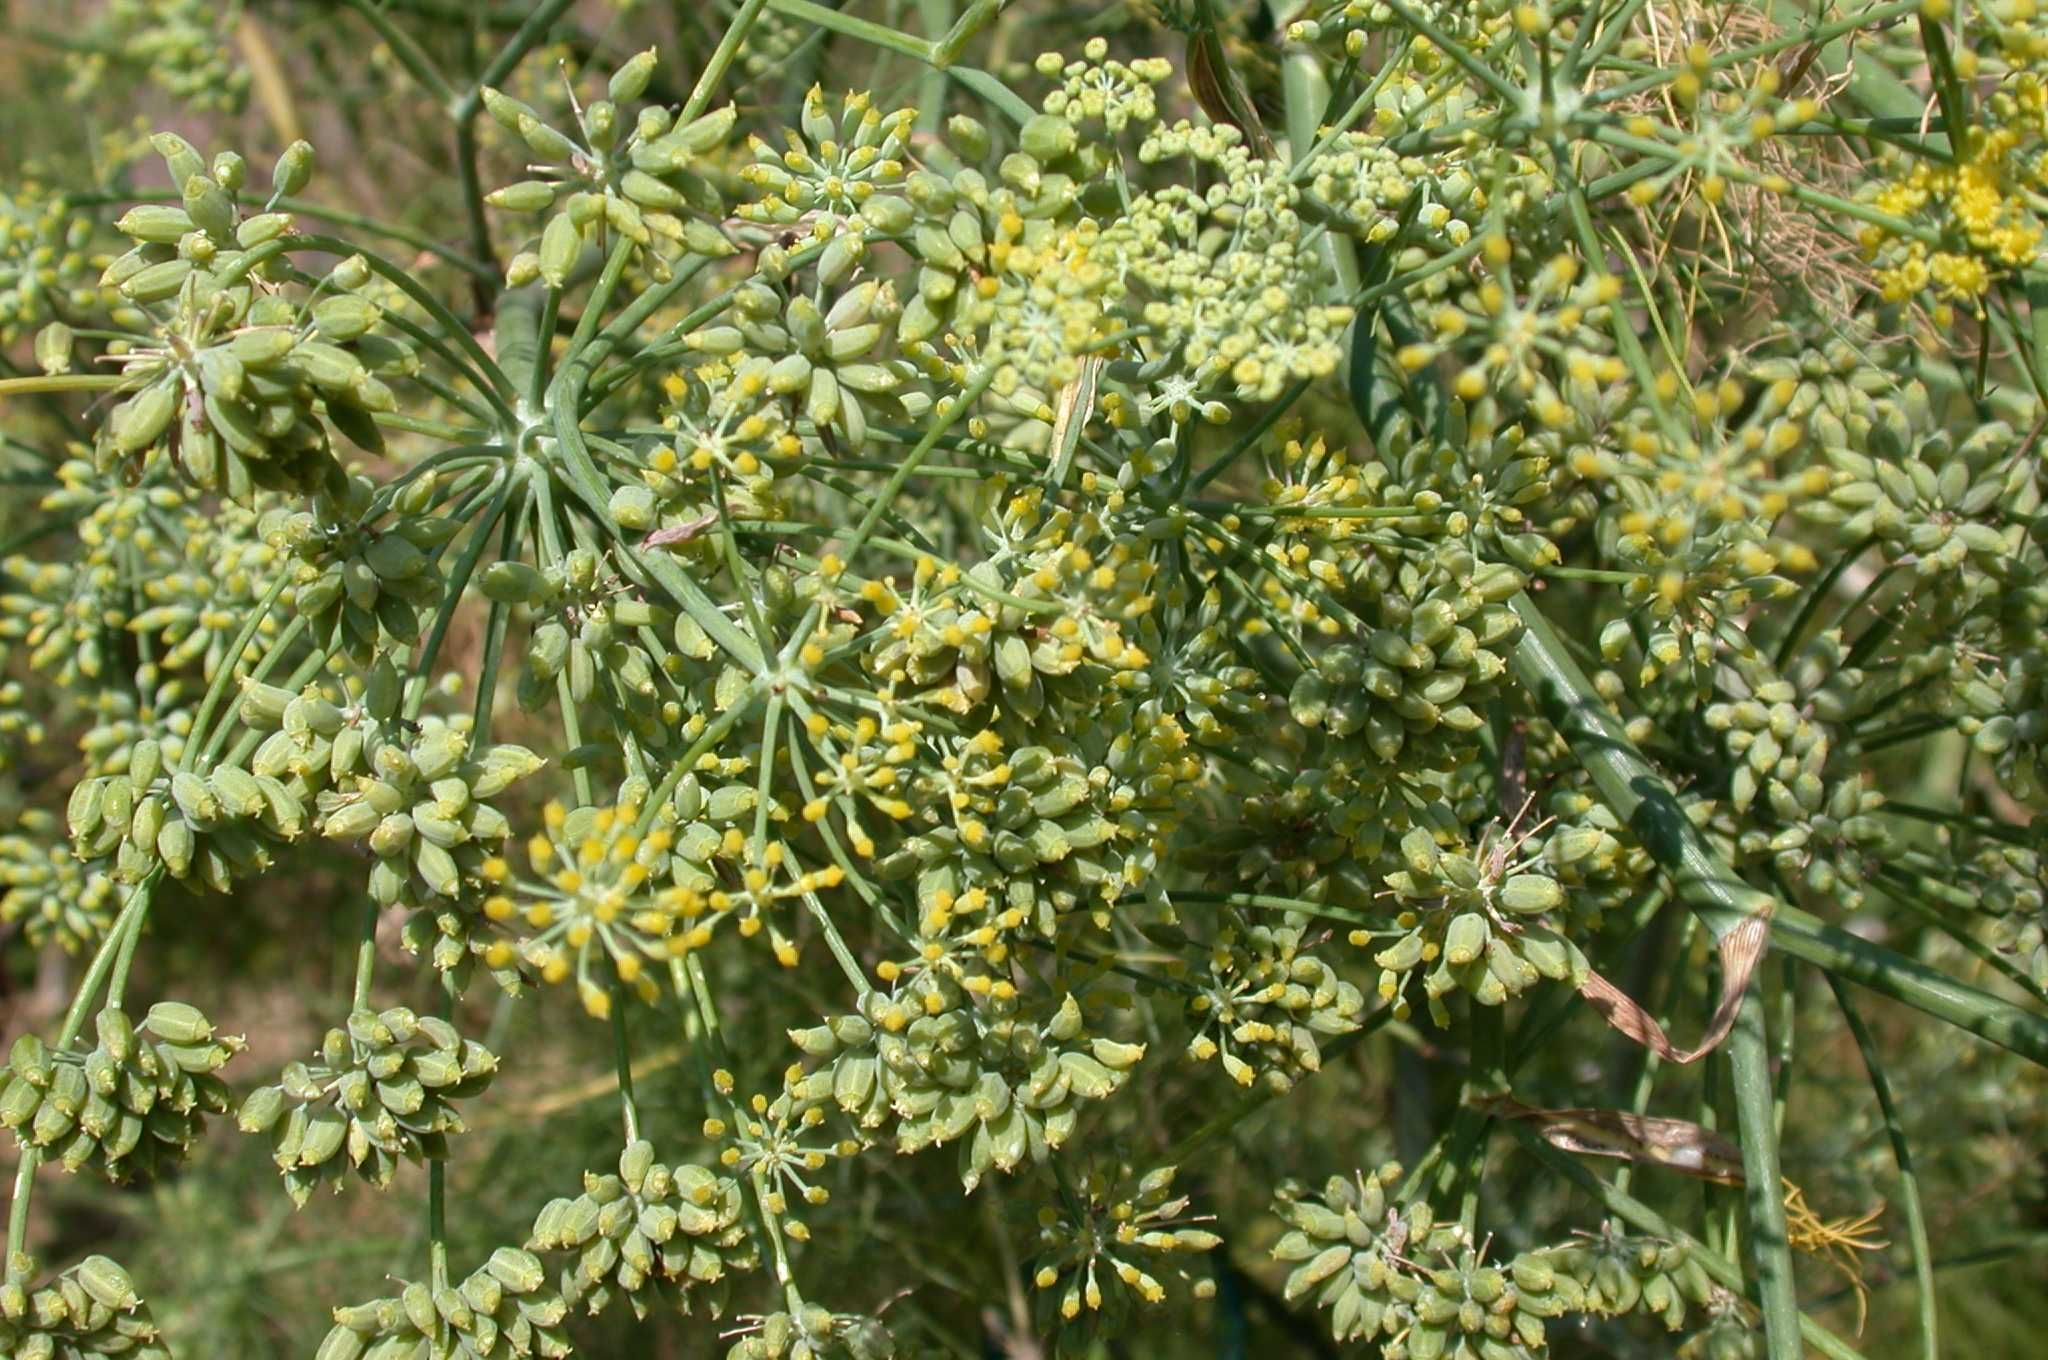 Ripening fennel fruits